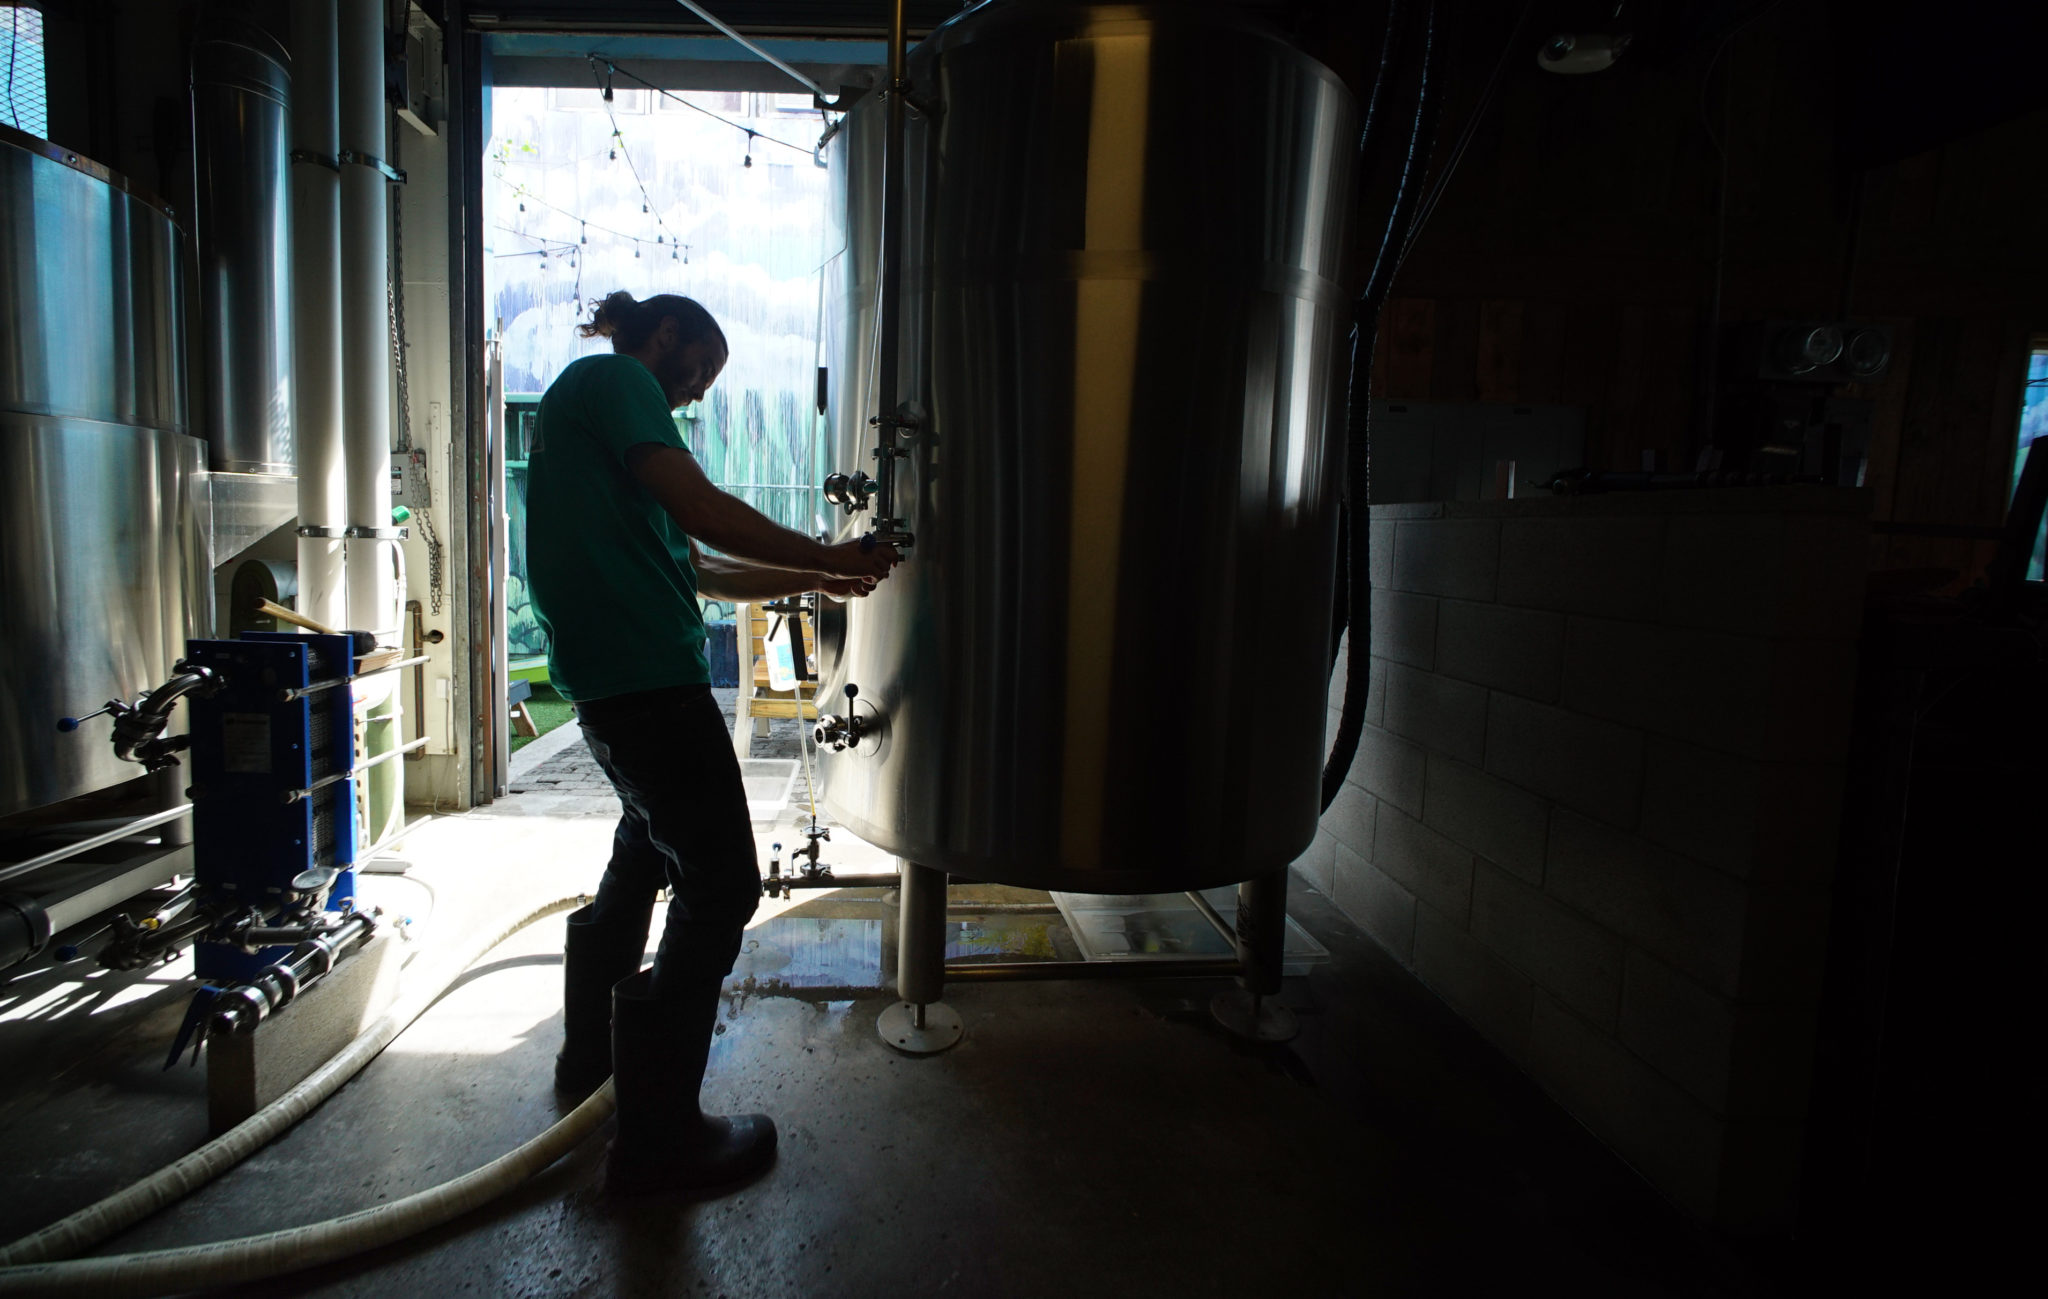 <p>Direnzo checks a tank of Kewalos Cream Ale after it was transferred from a fermentation vessel, perhaps to see if it fulfills the promise of the Honolulu Beerworks website: &#8220;The light malt flavors are balanced by a touch of herbal hops to provide a clean and crisp finish.&#8221;</p>